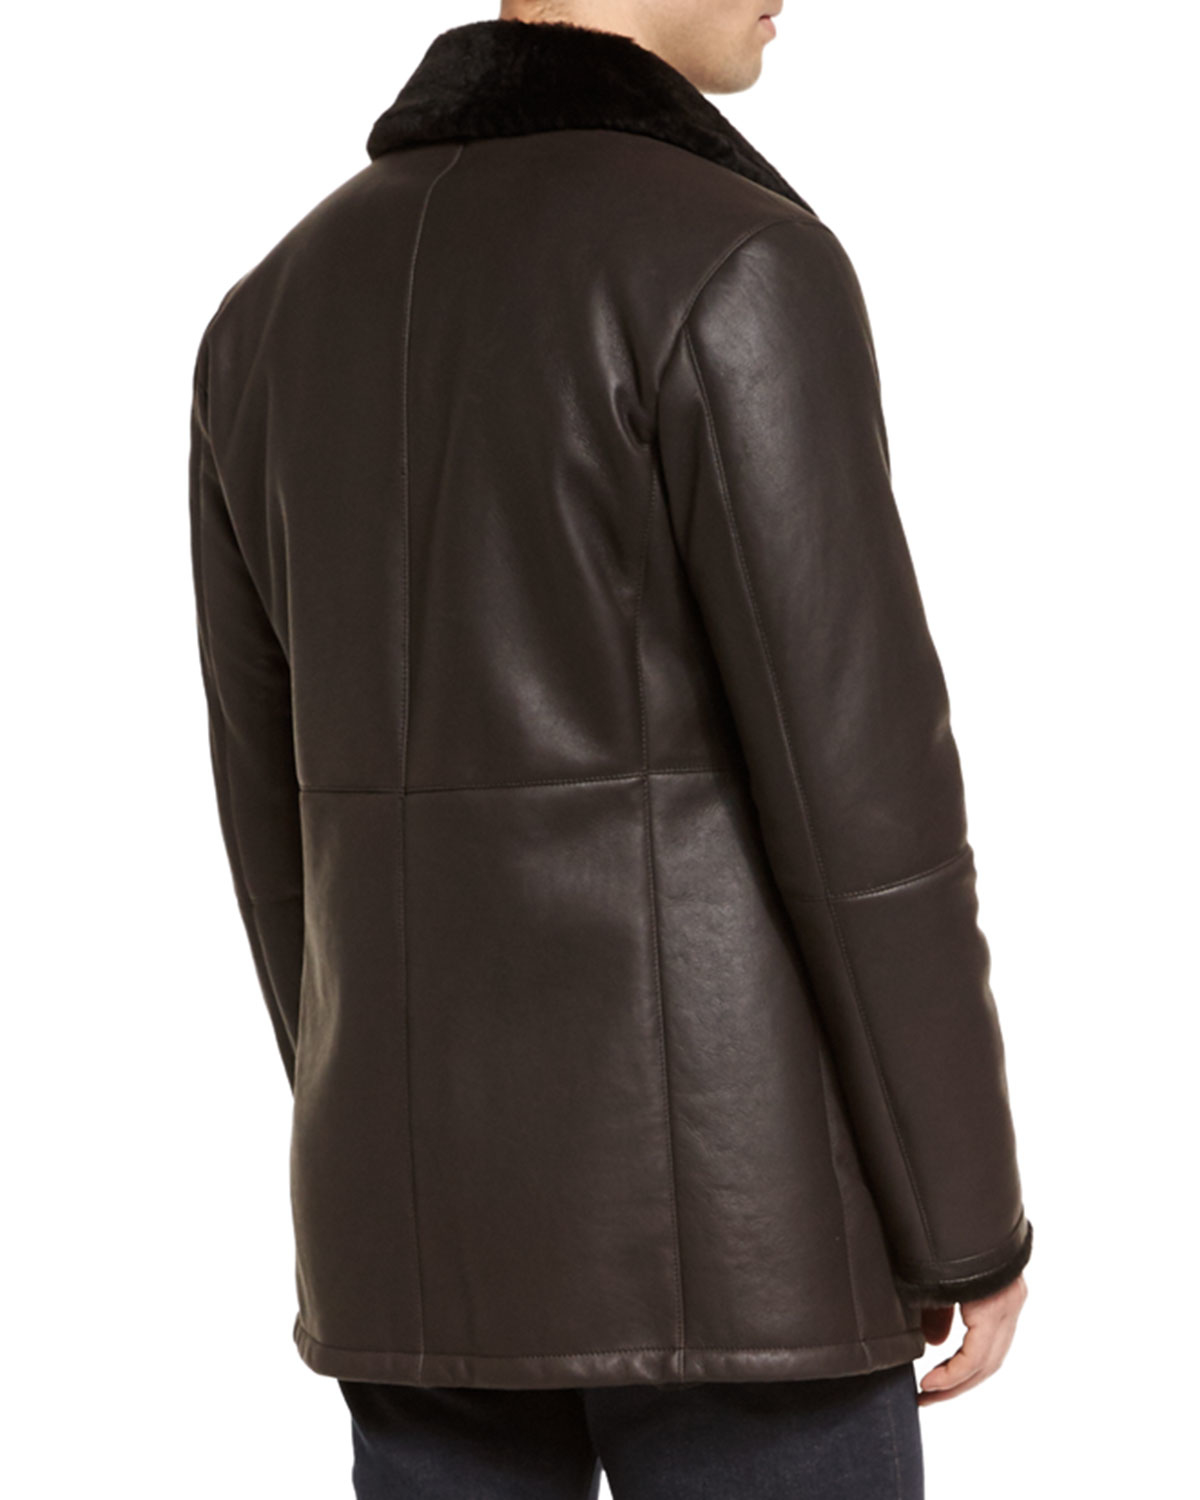 edffb71a Ermenegildo Zegna Brown Leather Jacket With Shearling Fur-lined Collar for  men